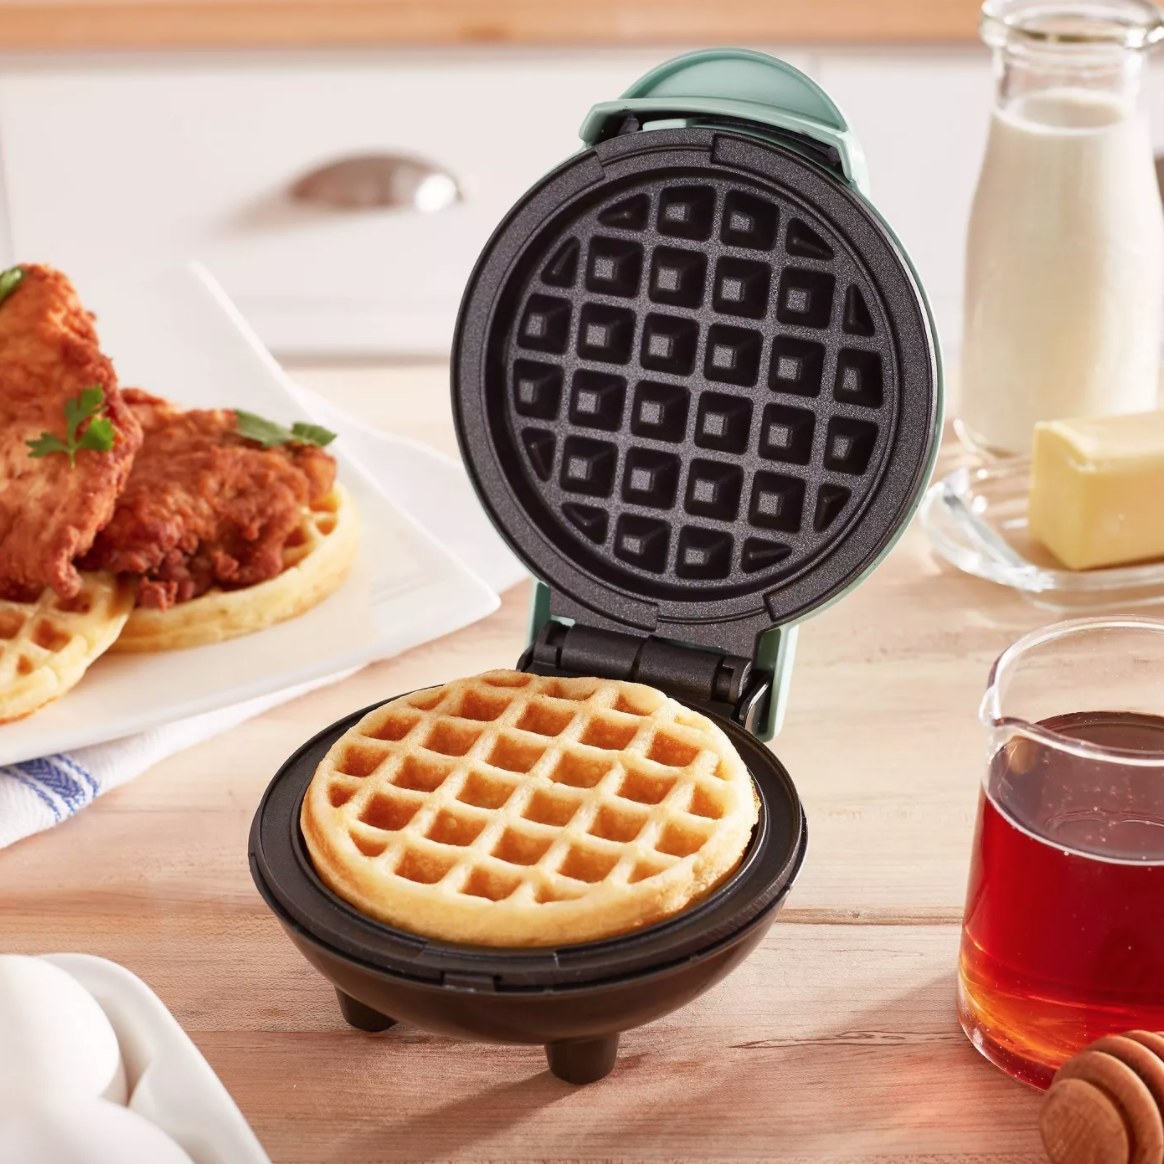 The waffle maker in the color aqua